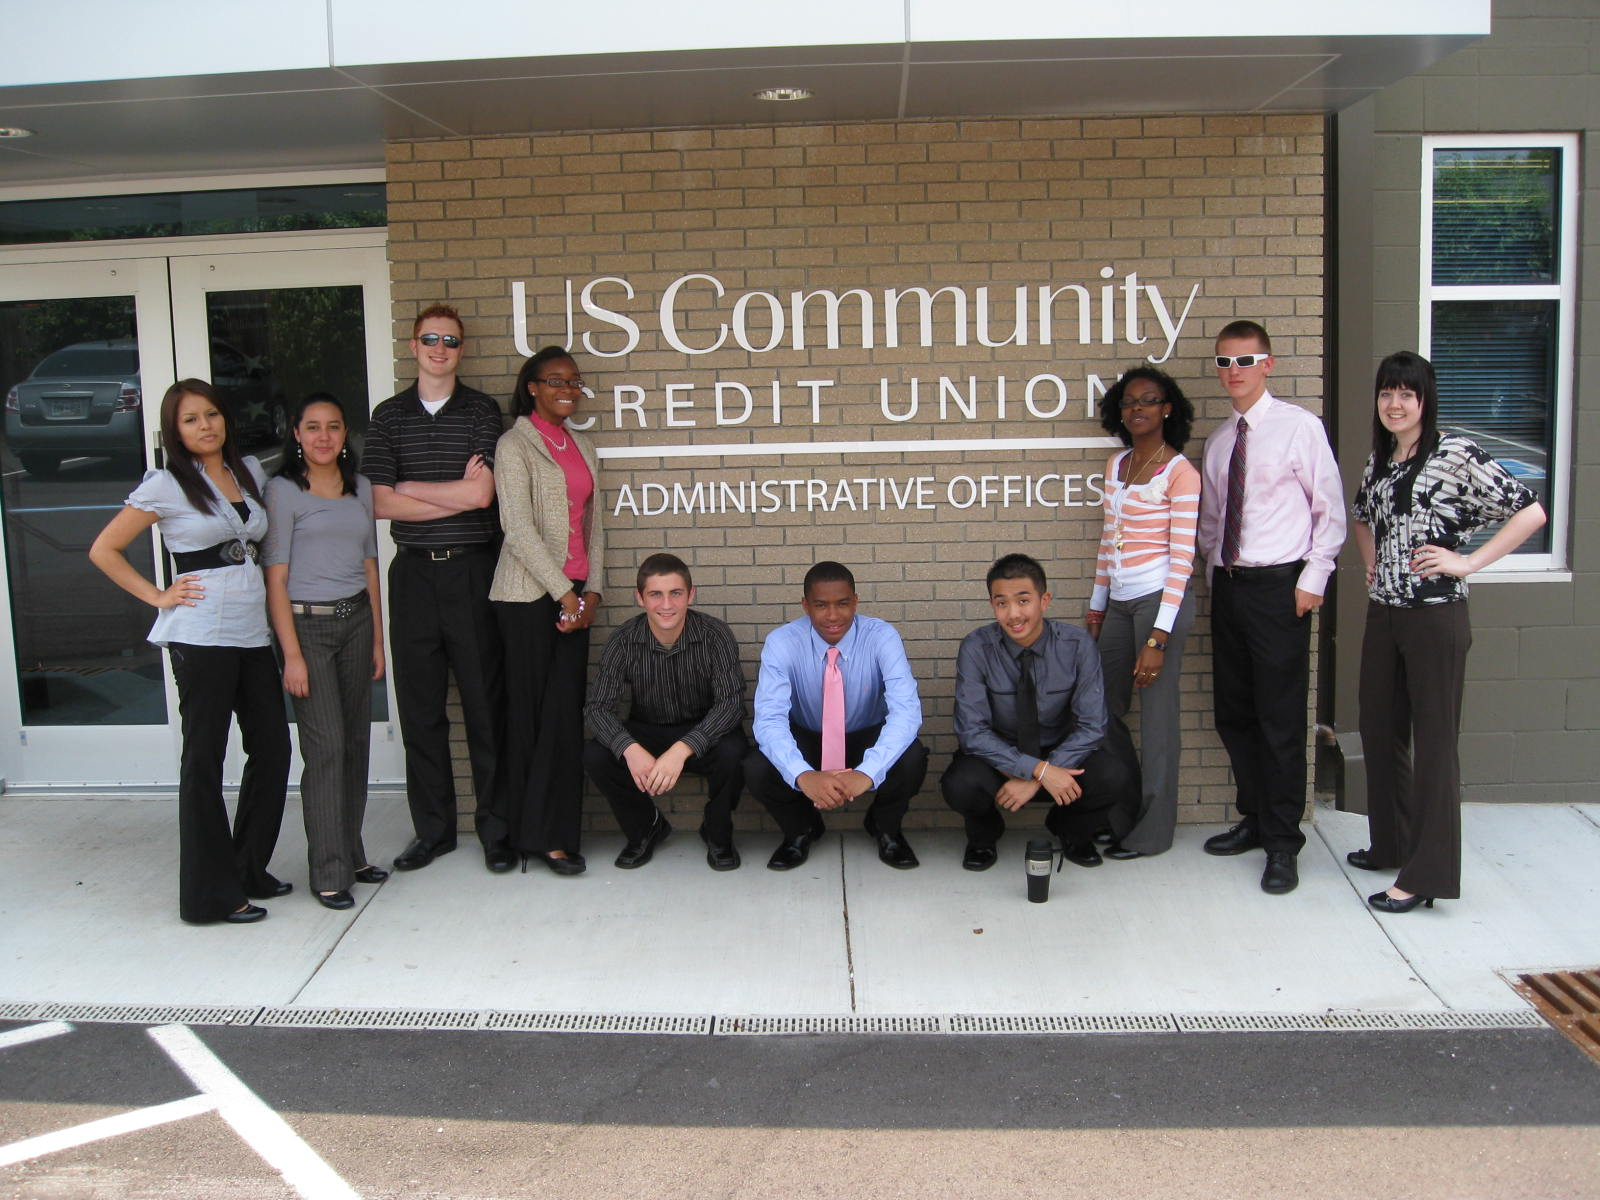 McGavock student summer internship U.S. Community Credit Union